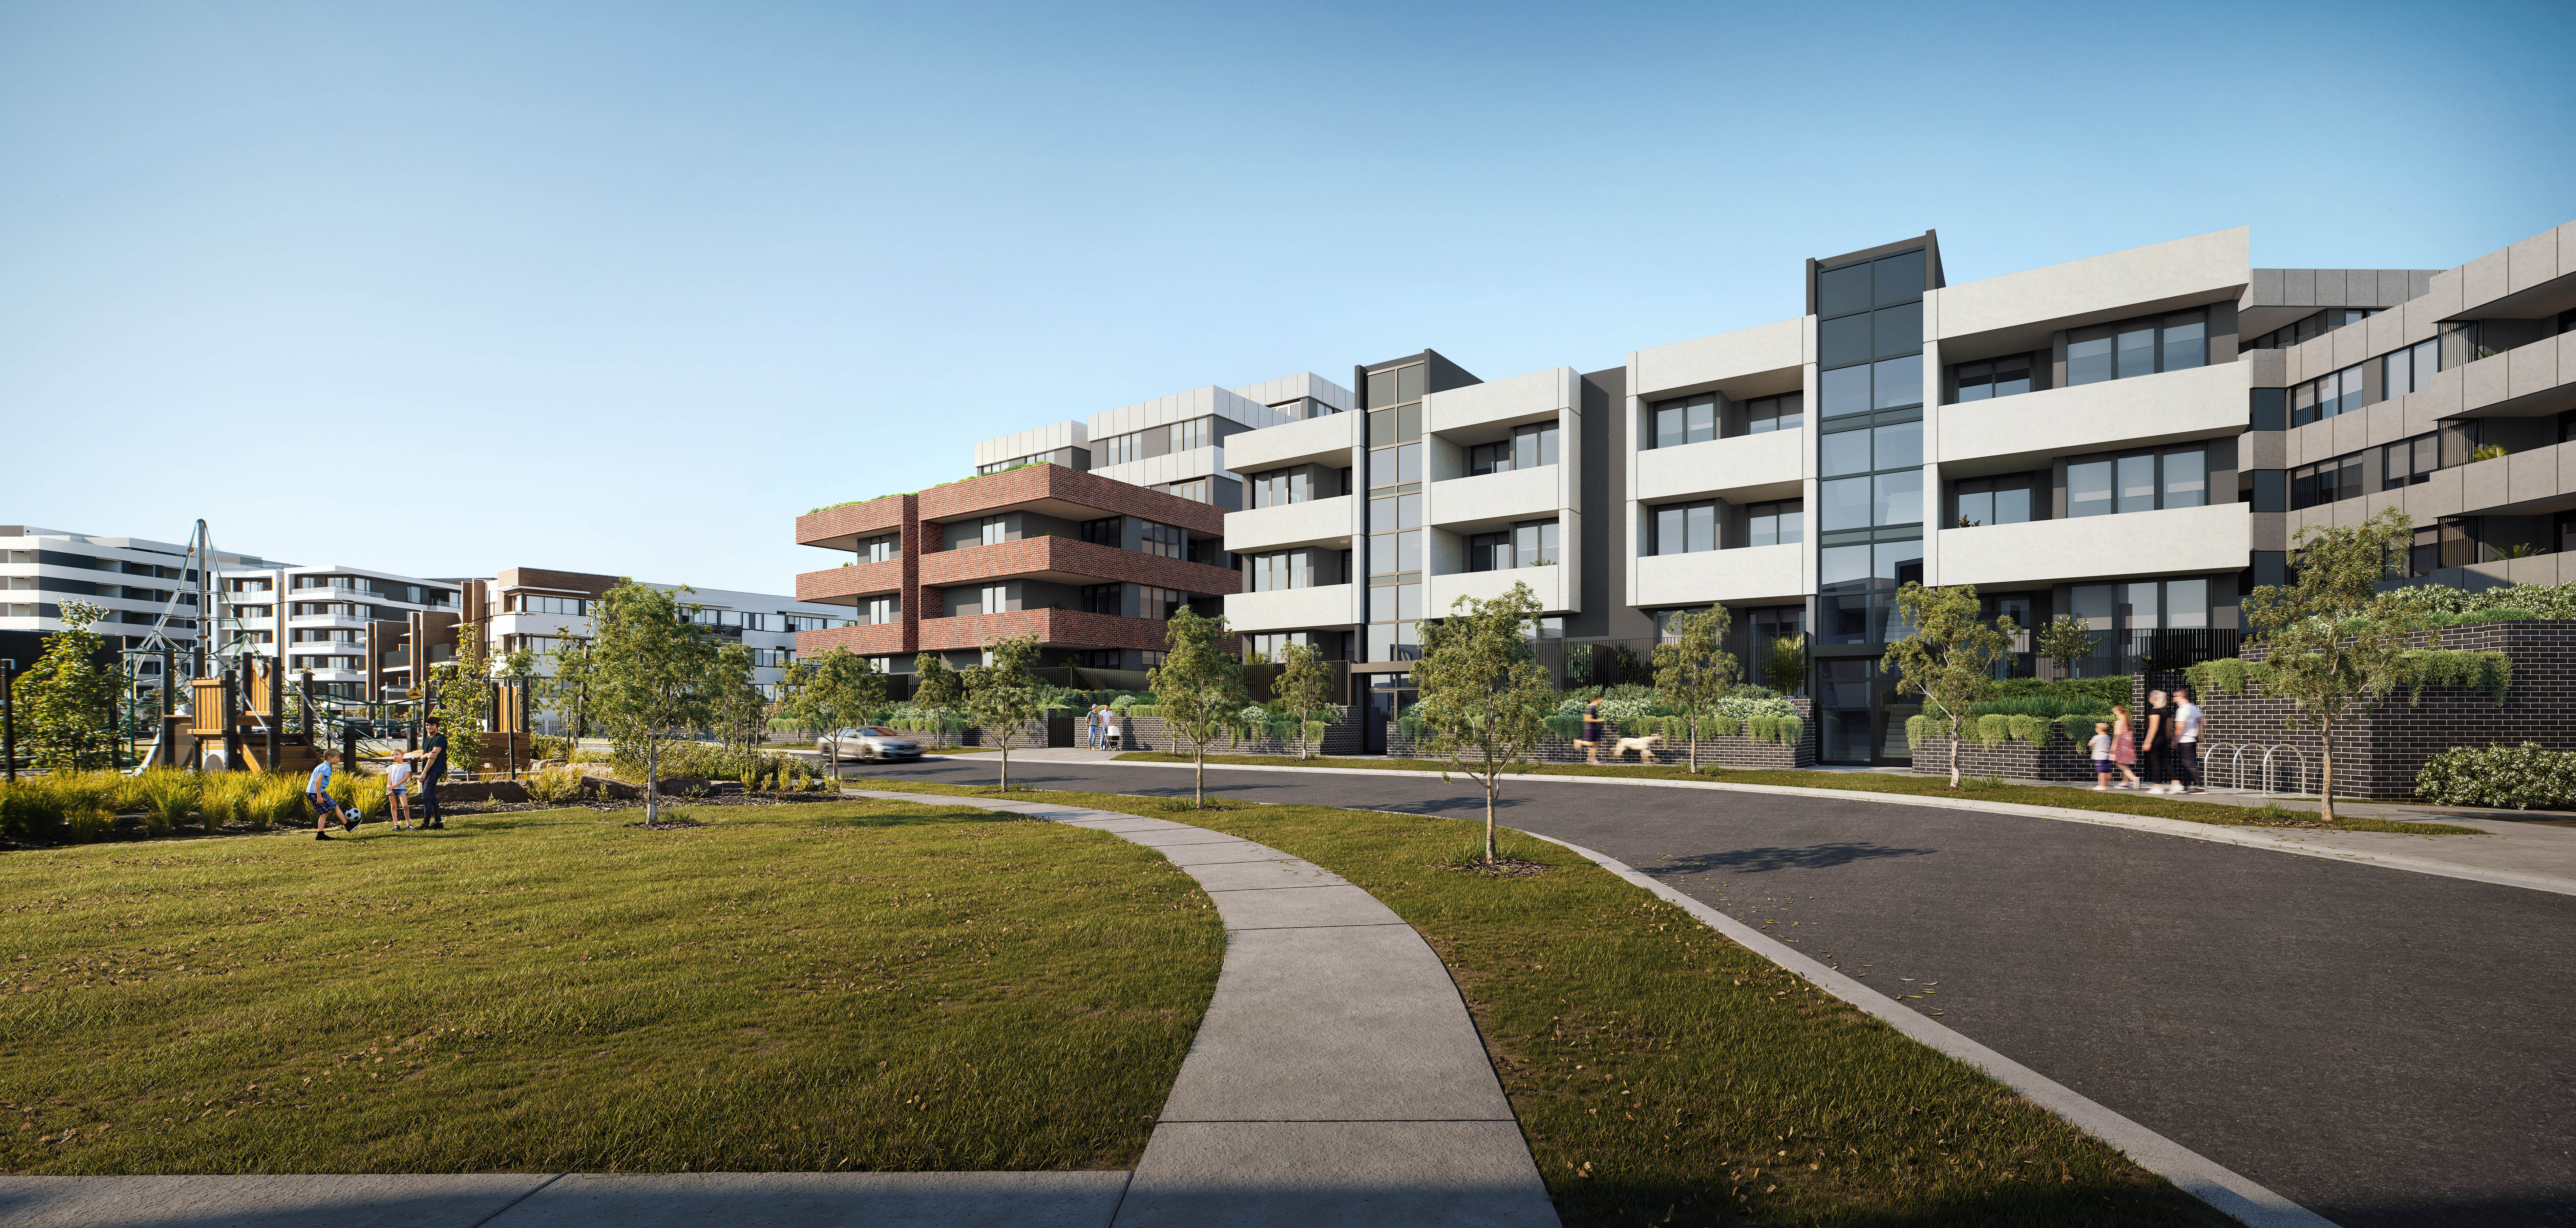 April 2021: Five luxury apartments on the market in Melbourne under $400,000